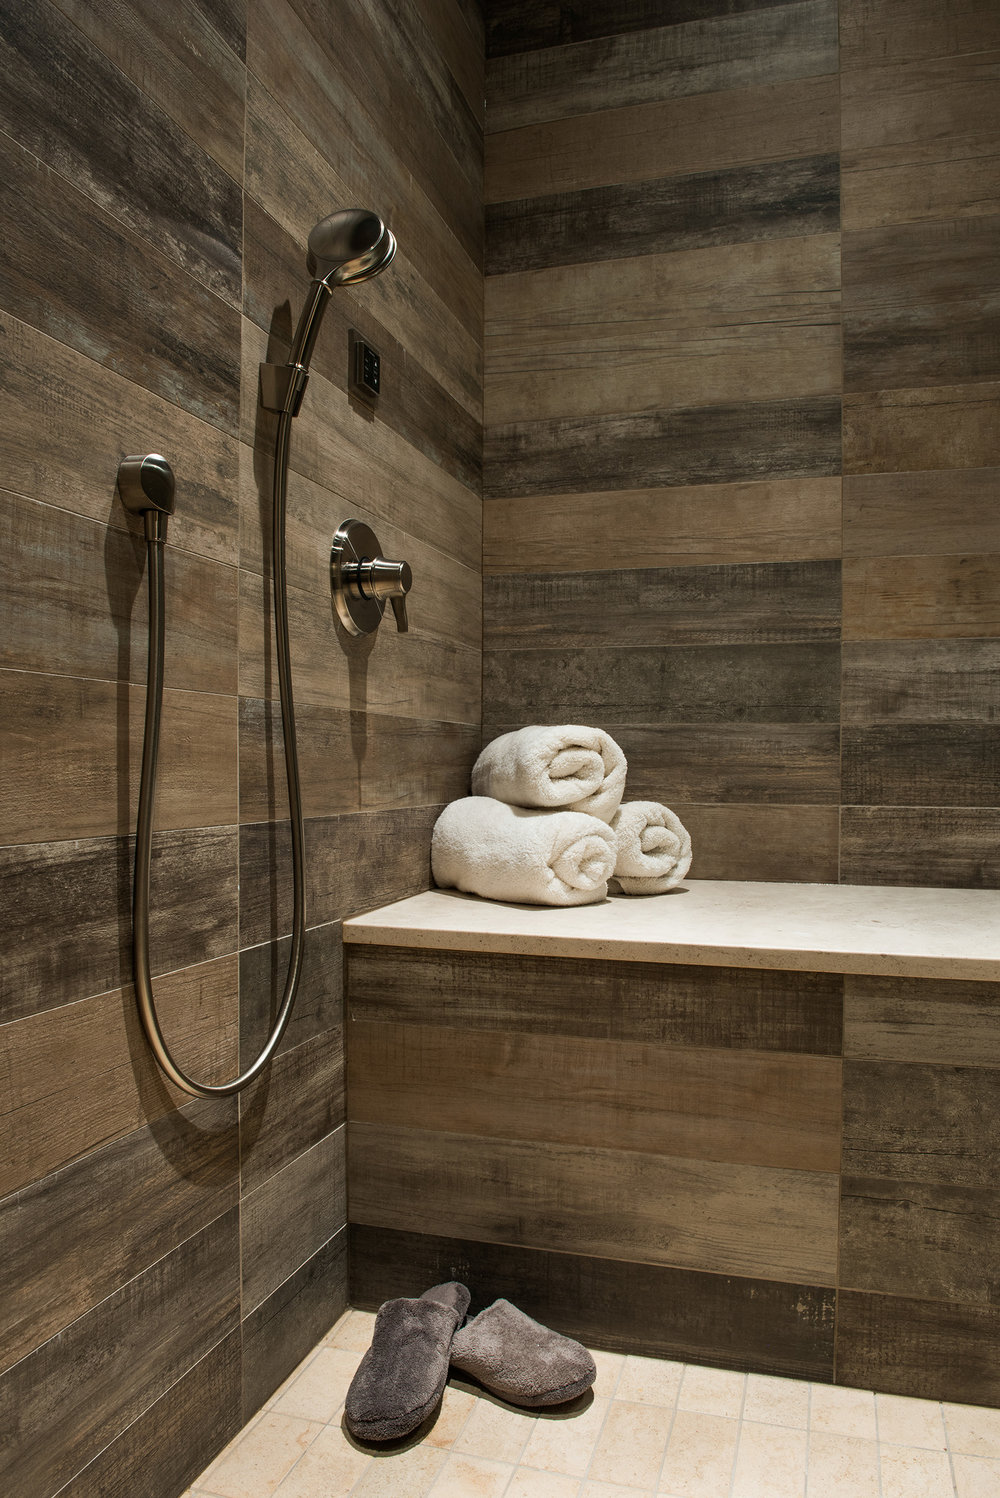 I could easily relax in this steam room with wrap around, barn wood style tile.